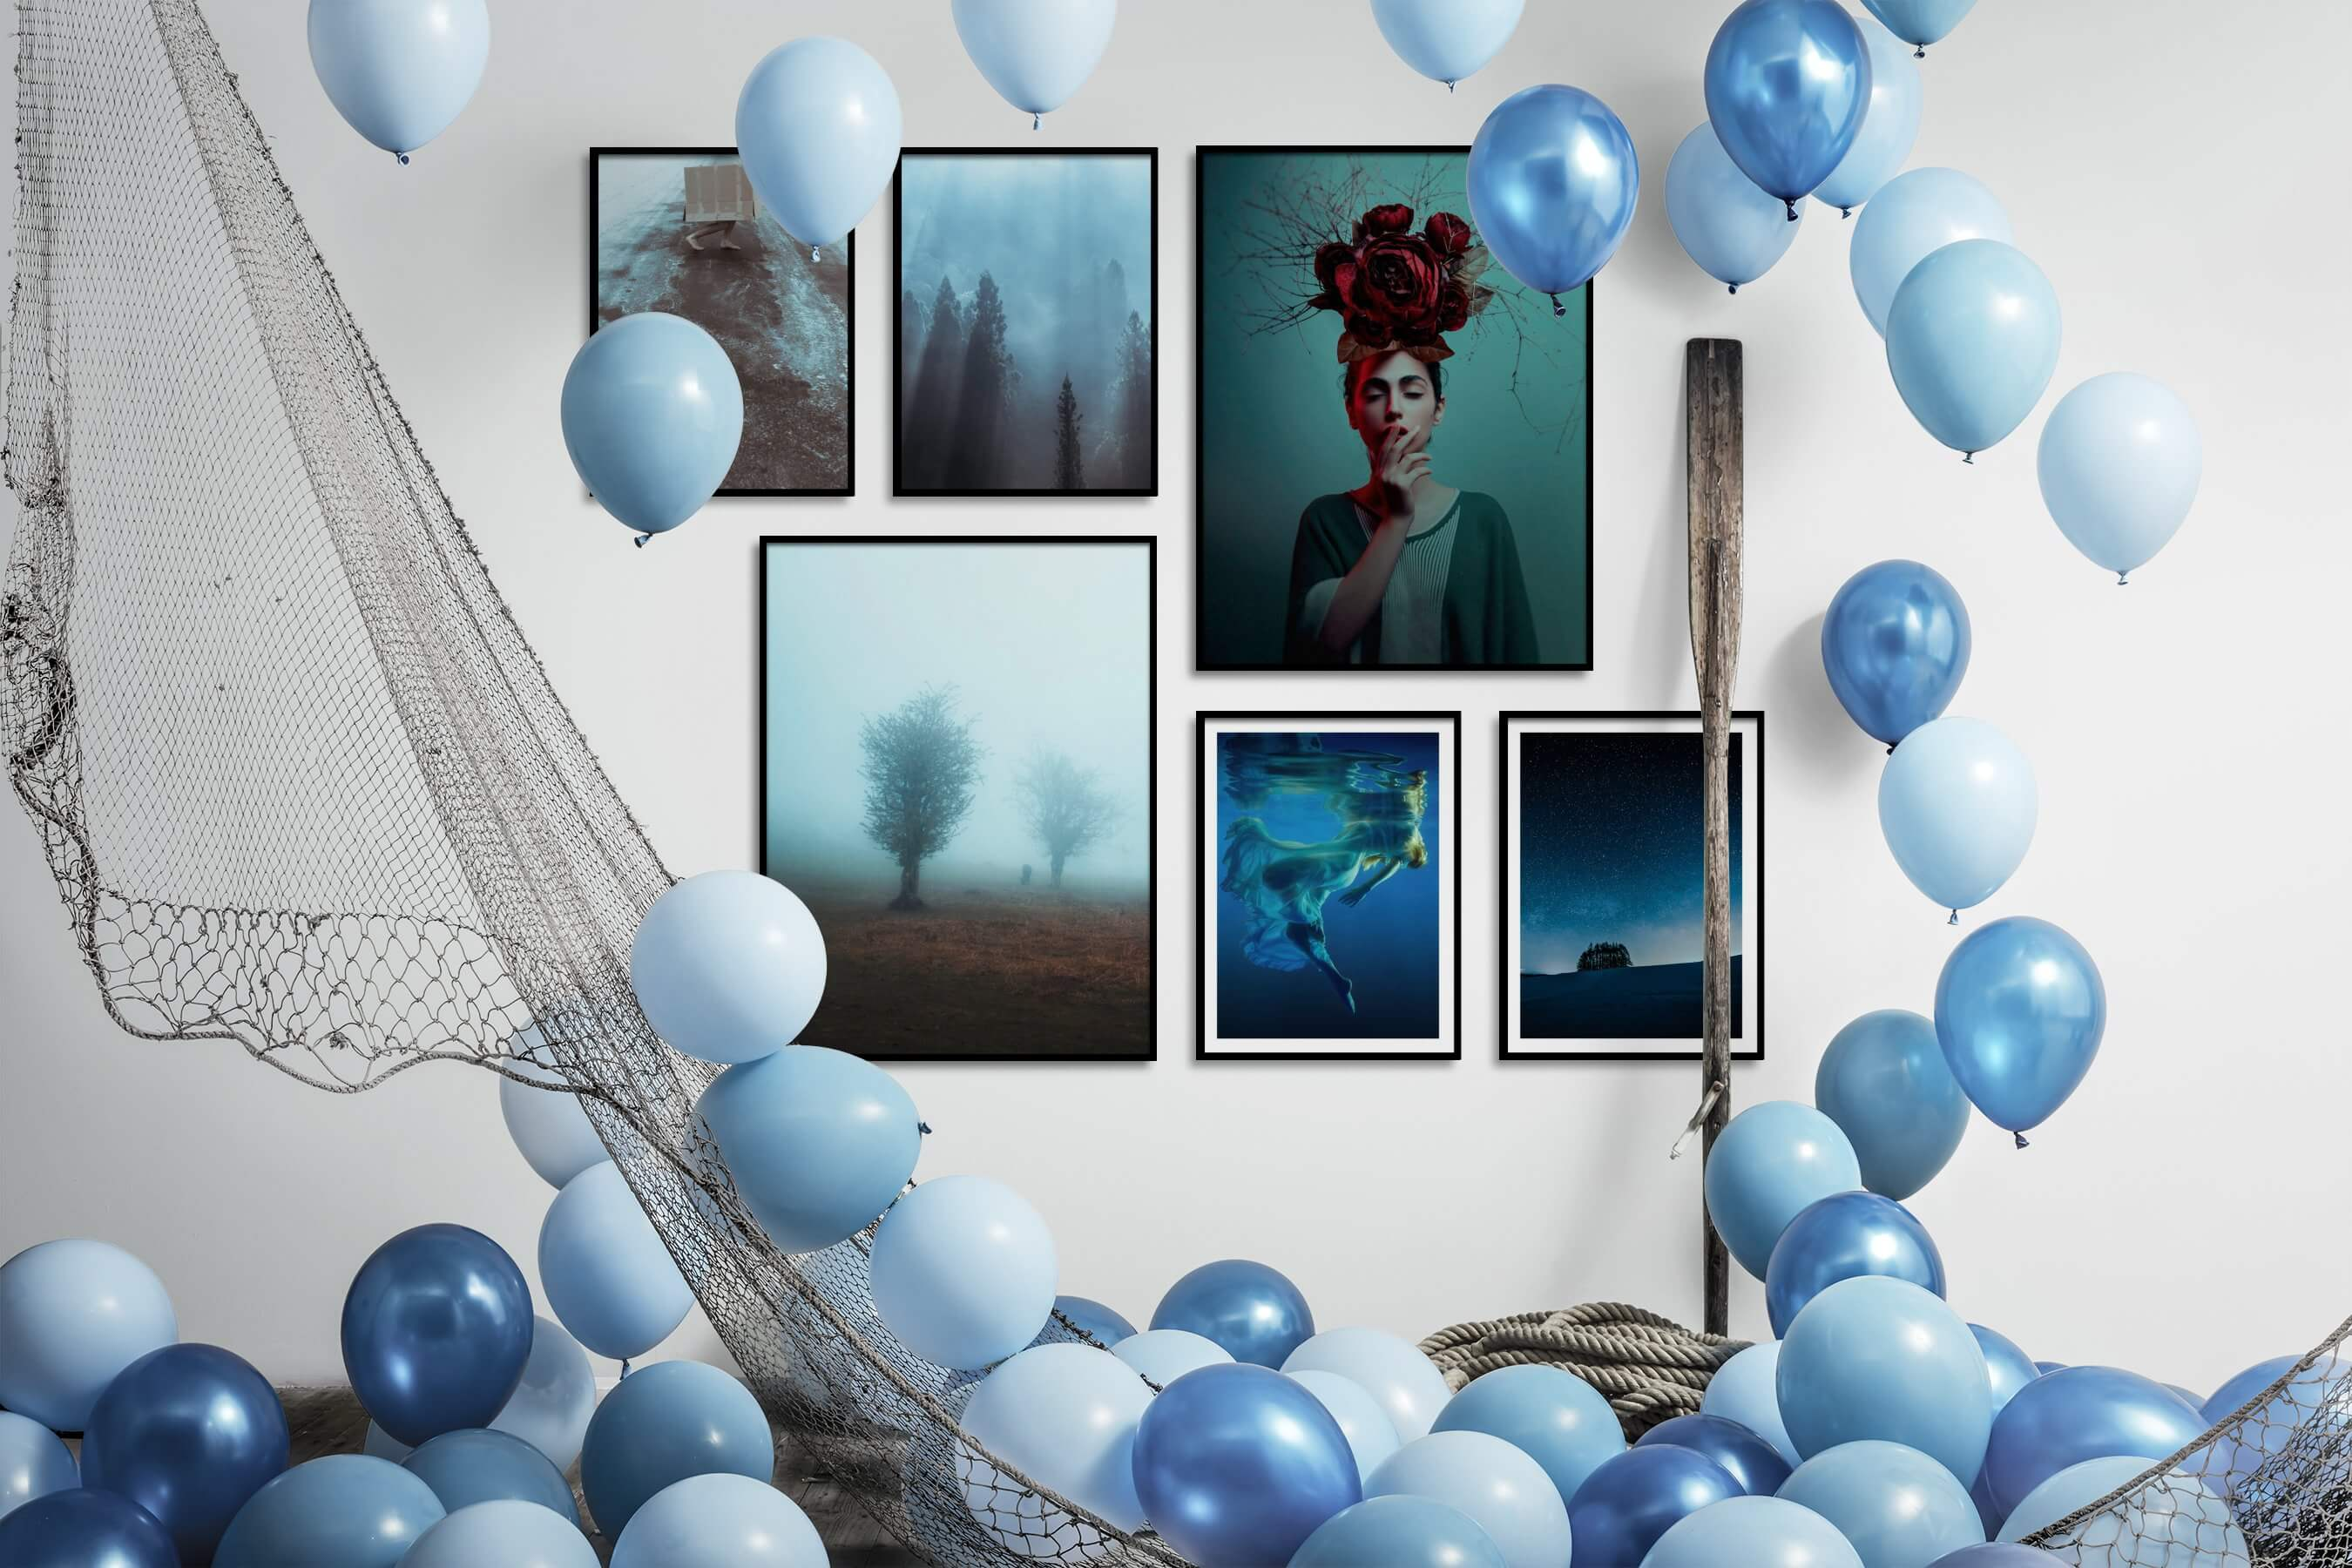 Gallery wall idea with six framed pictures arranged on a wall depicting Artsy, Nature, Mindfulness, Country Life, Fashion & Beauty, Beach & Water, and Dark Tones